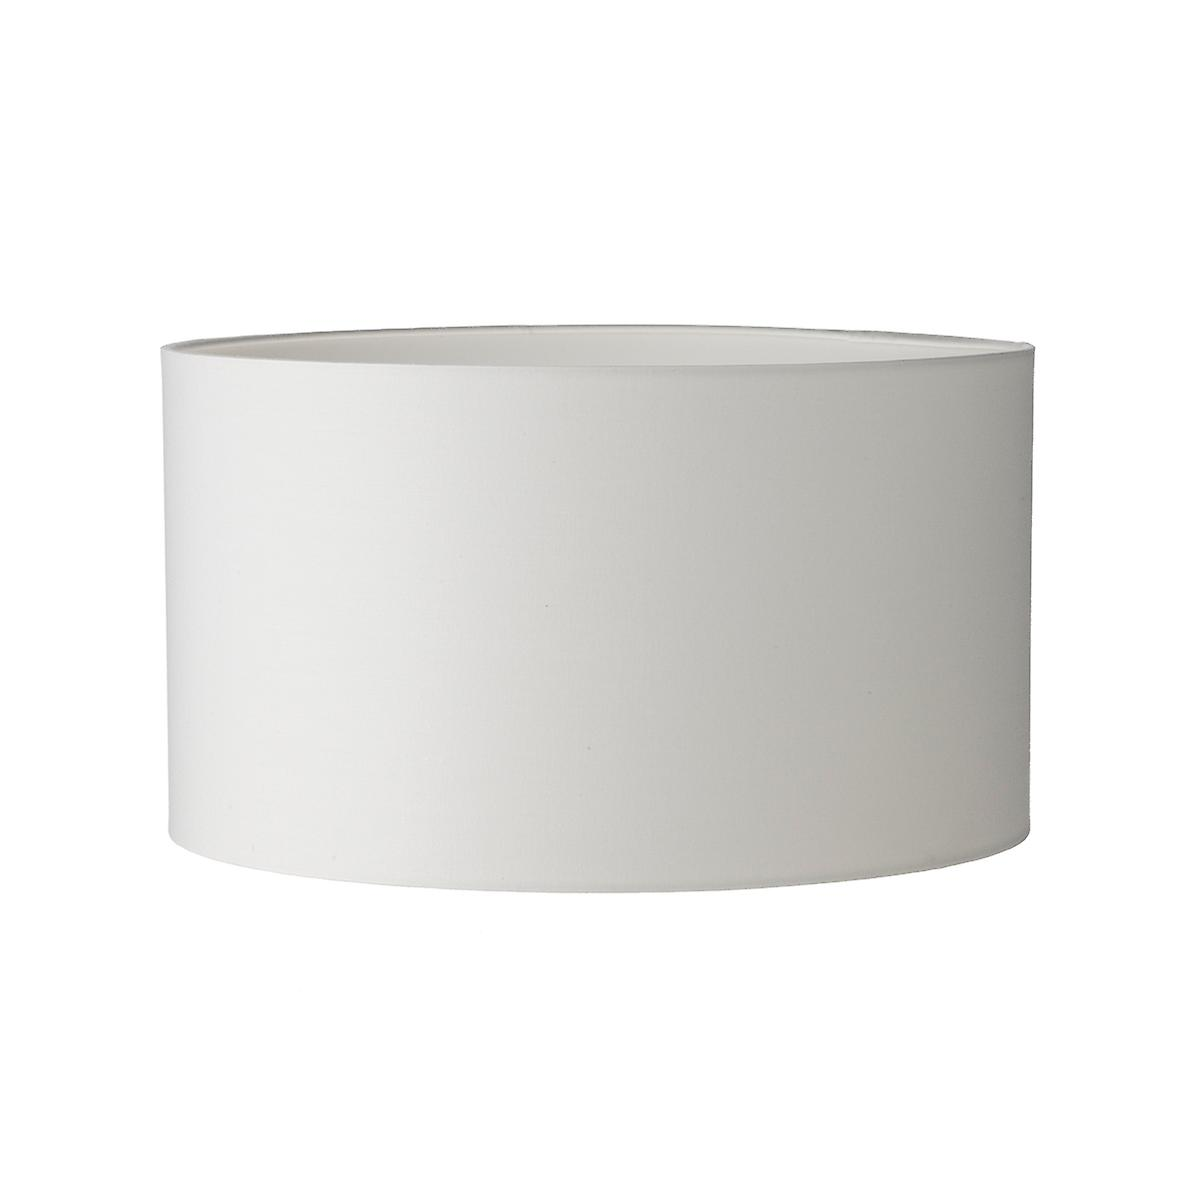 Dar S1058 Tuscan Cream Coloured Shade For The Tuscan Table Lamp